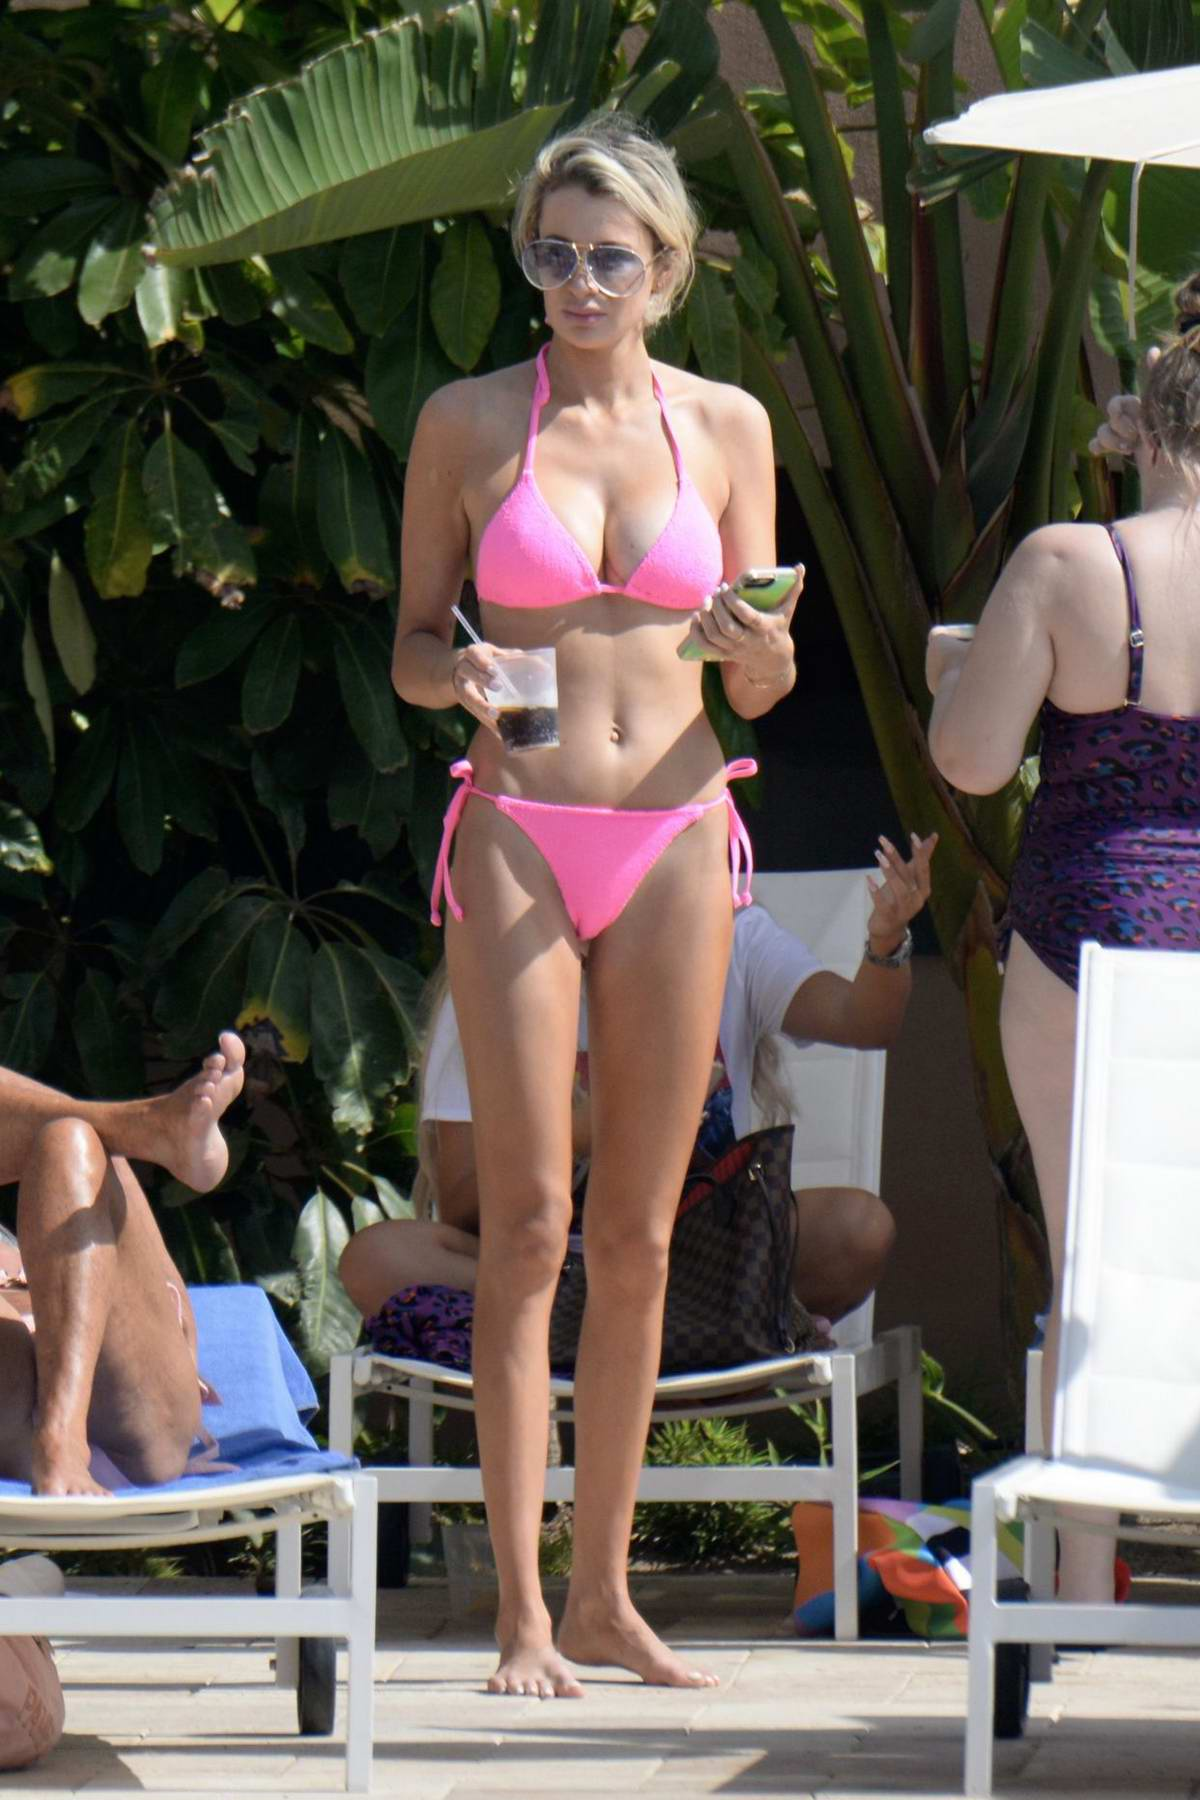 Olivia Attwood wears a pink bikini as she hits the pool in Marbella, Spain